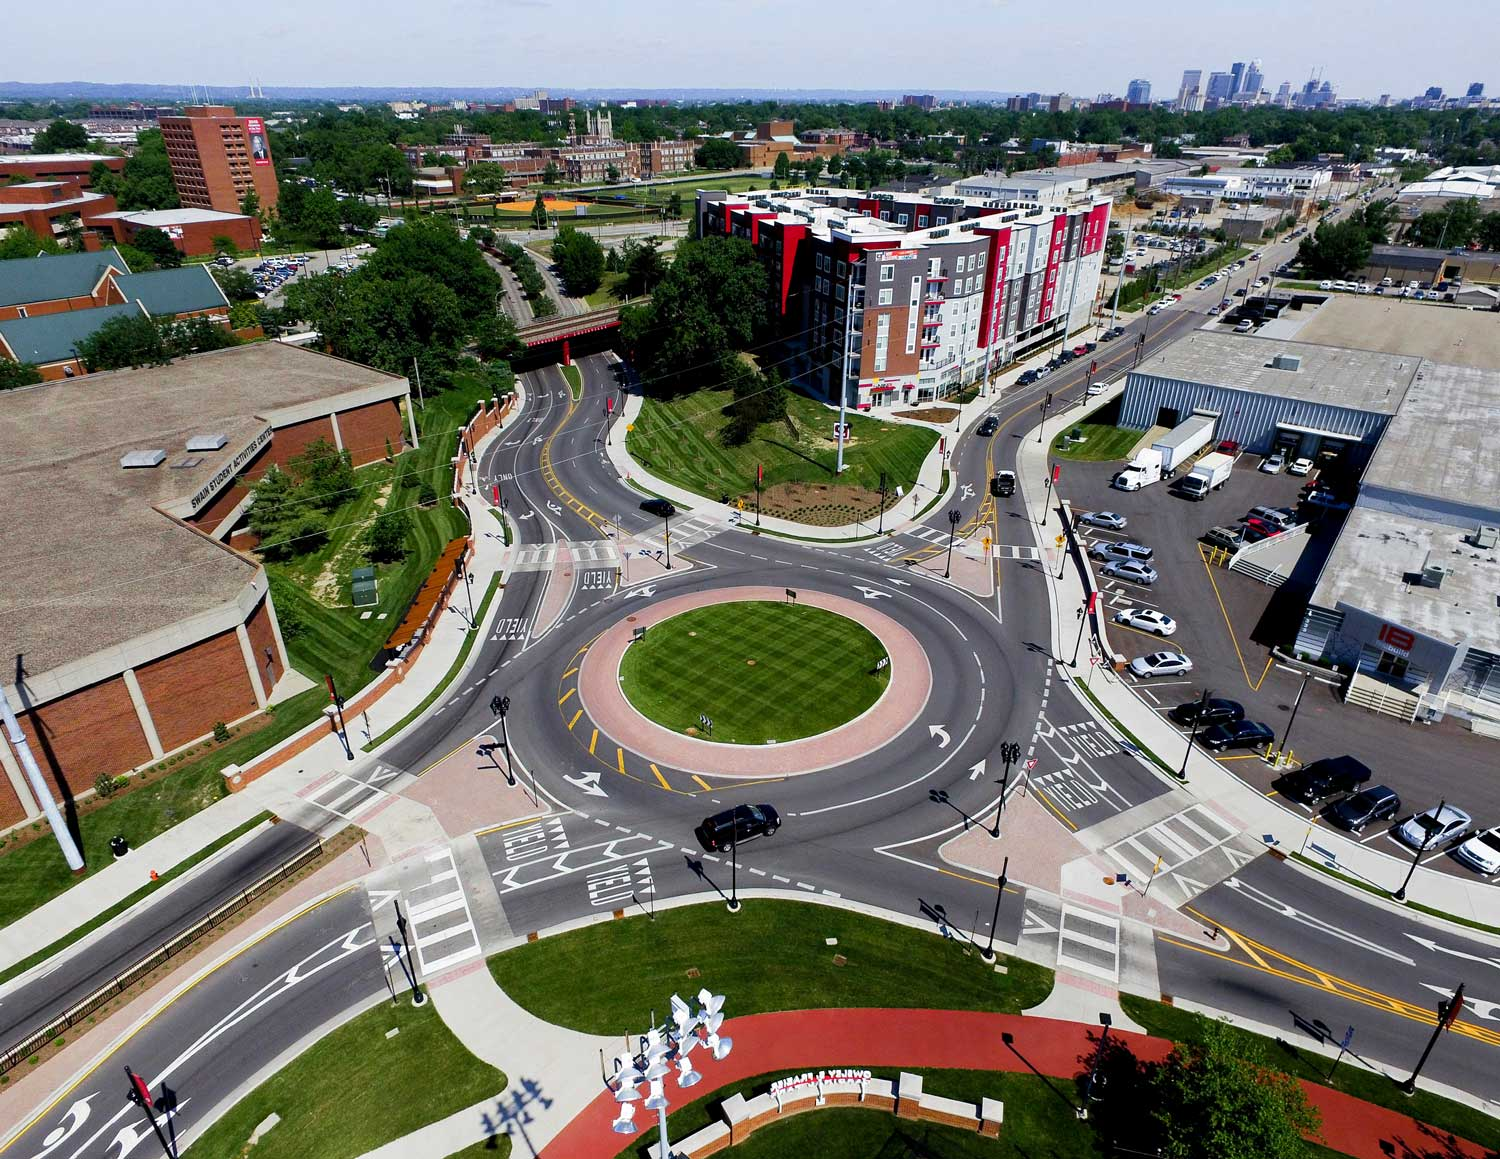 University of Louisville Roundabout Aerial View